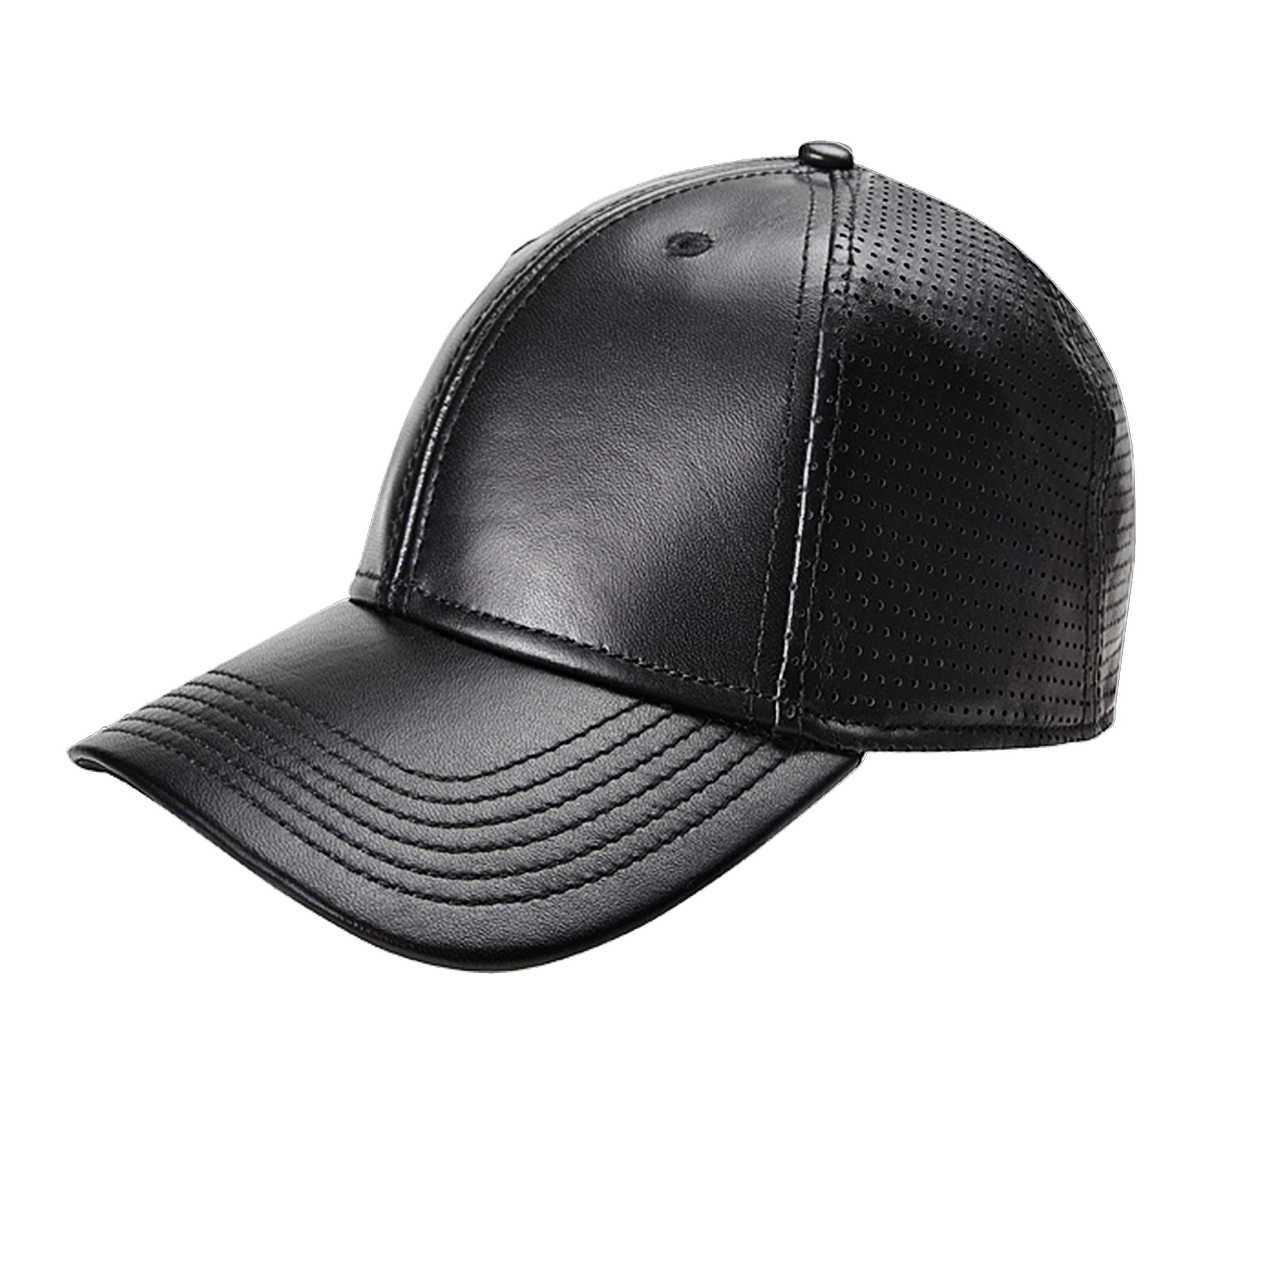 Perforated Leather Baseball Cap Black Leather Baseball Cap Perforated Leather Cap